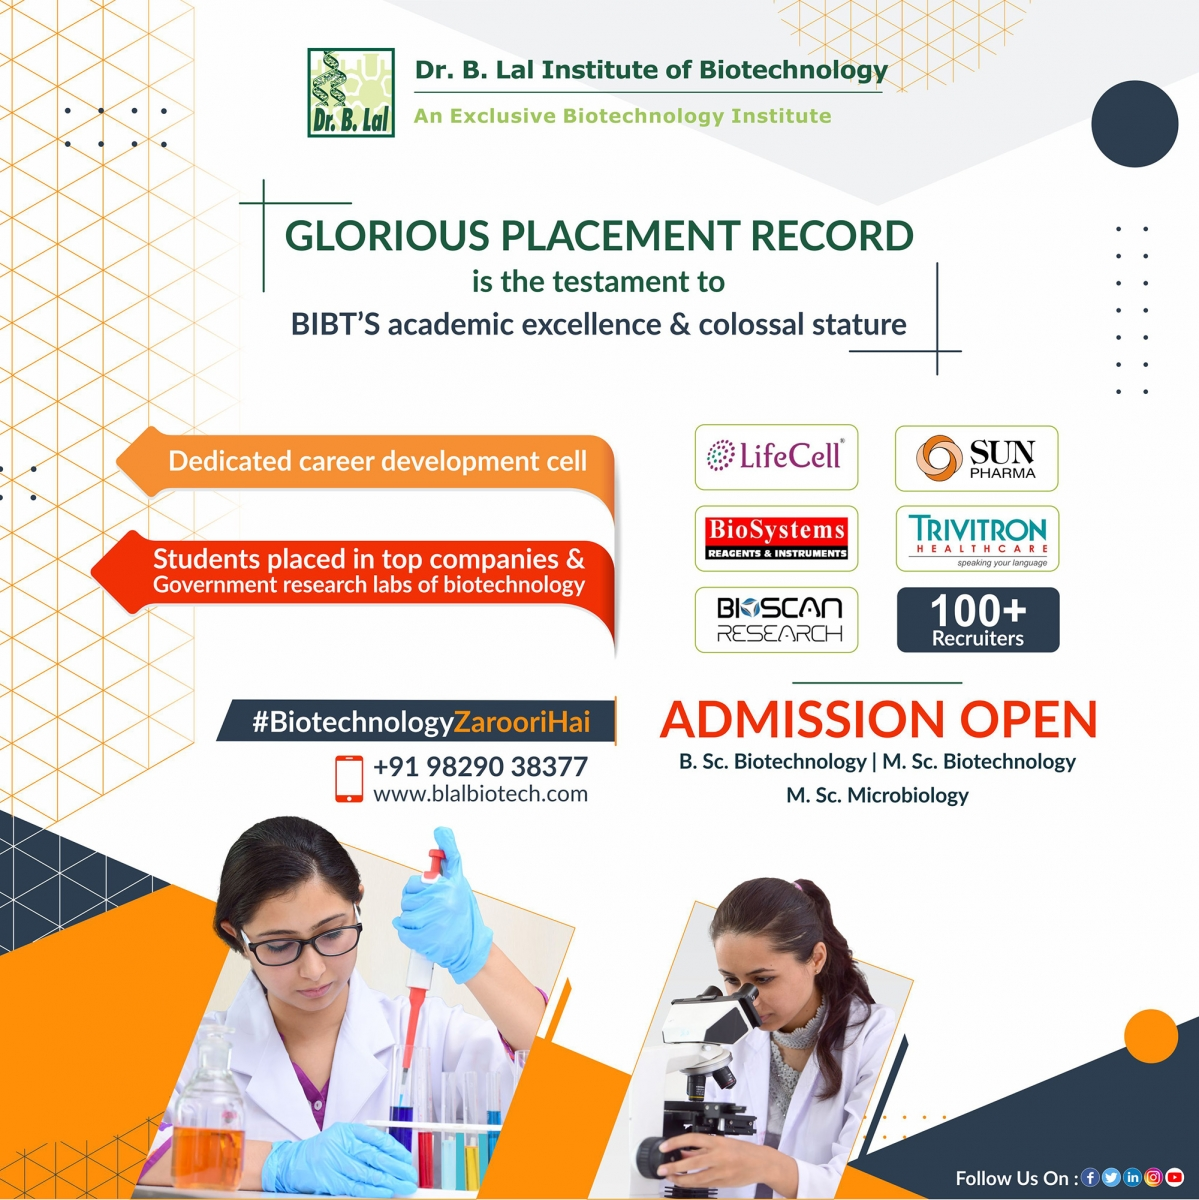 Placements | Dr. B. Lal Institute of Biotechnology